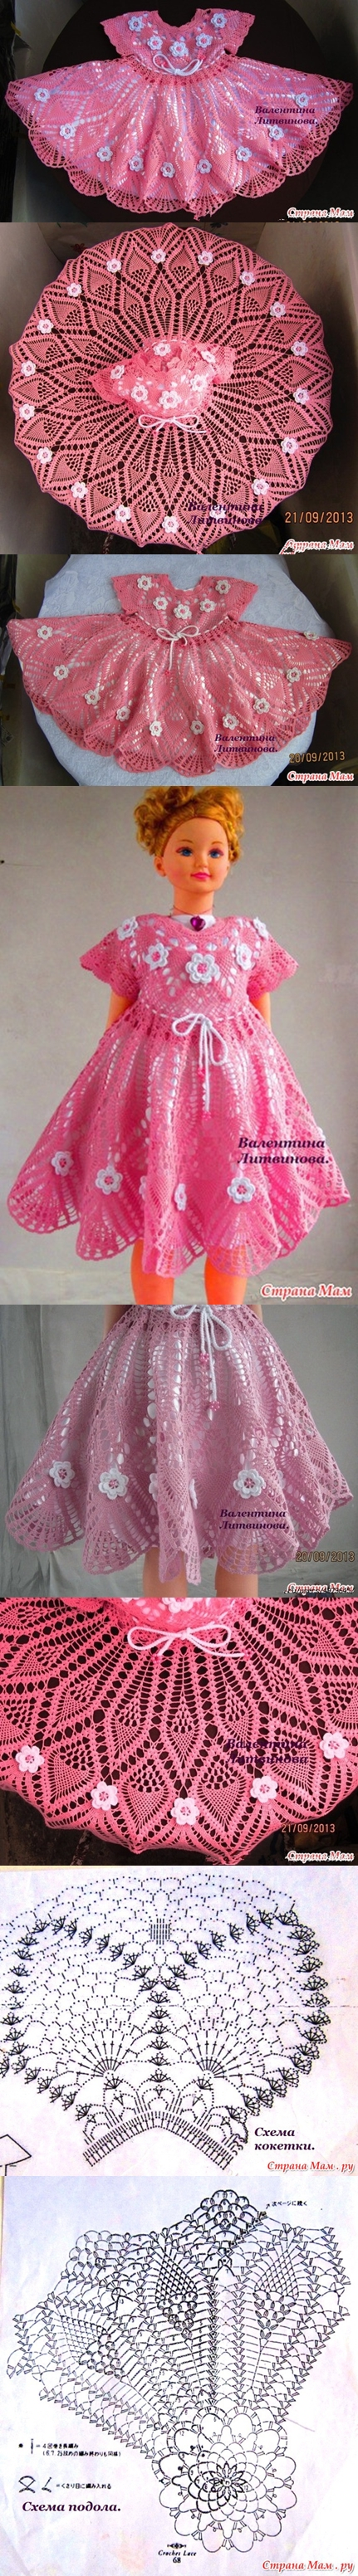 DIY Crochet Princess Dress